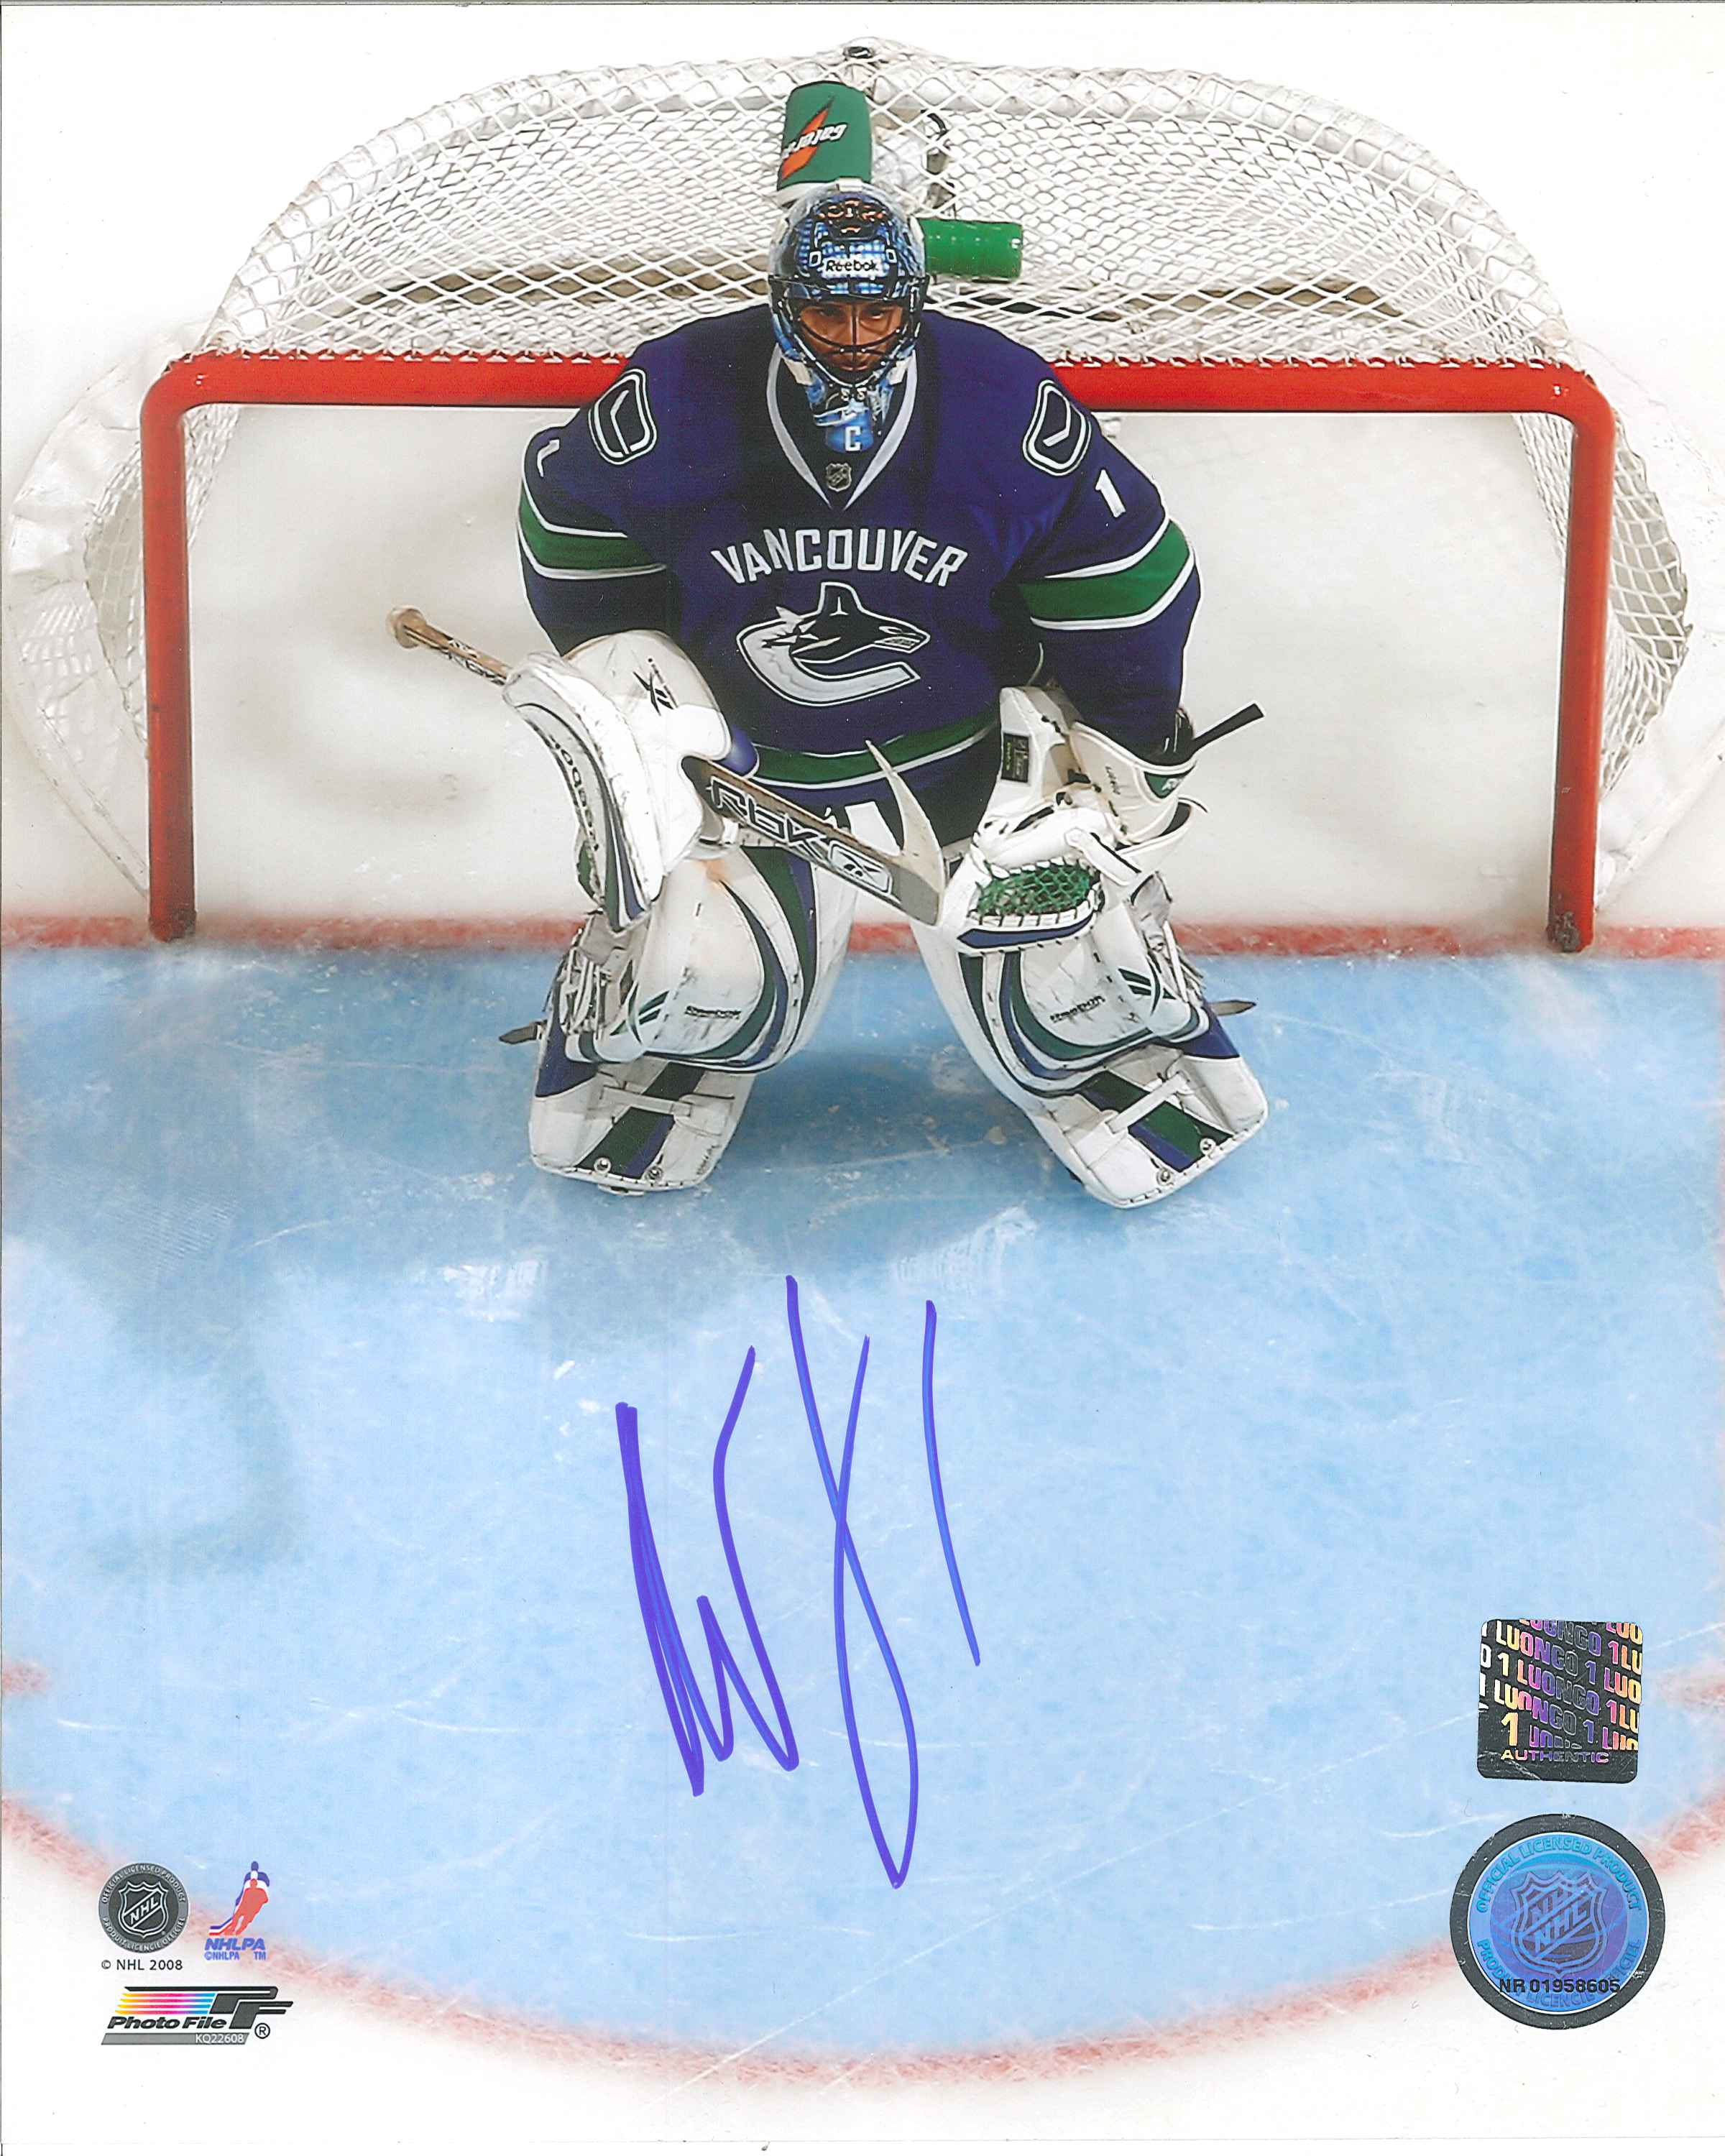 27db01d87 ... Roberto Luongo Autographed Vancouver Canucks 8 x 10 Photo.  20180606141411925 0013